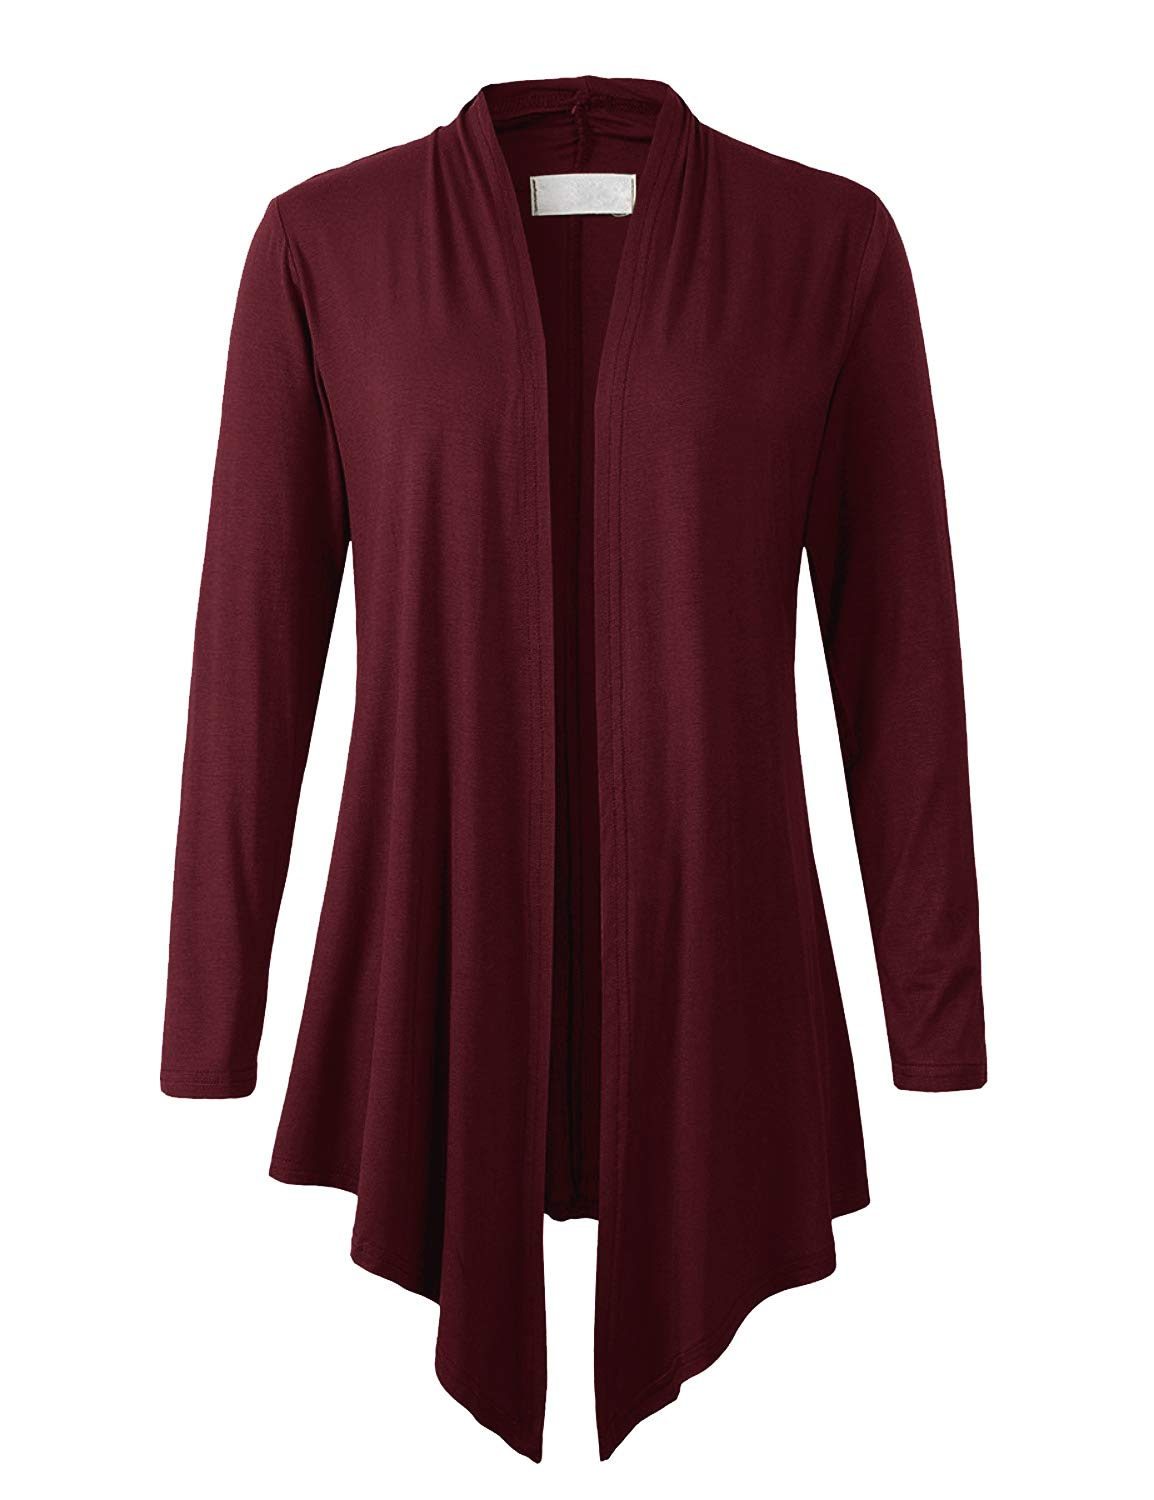 Eanklosco Women Open Front Cardigan Plus Size Drape Long Sleeve Coat (Wine Red, XL)